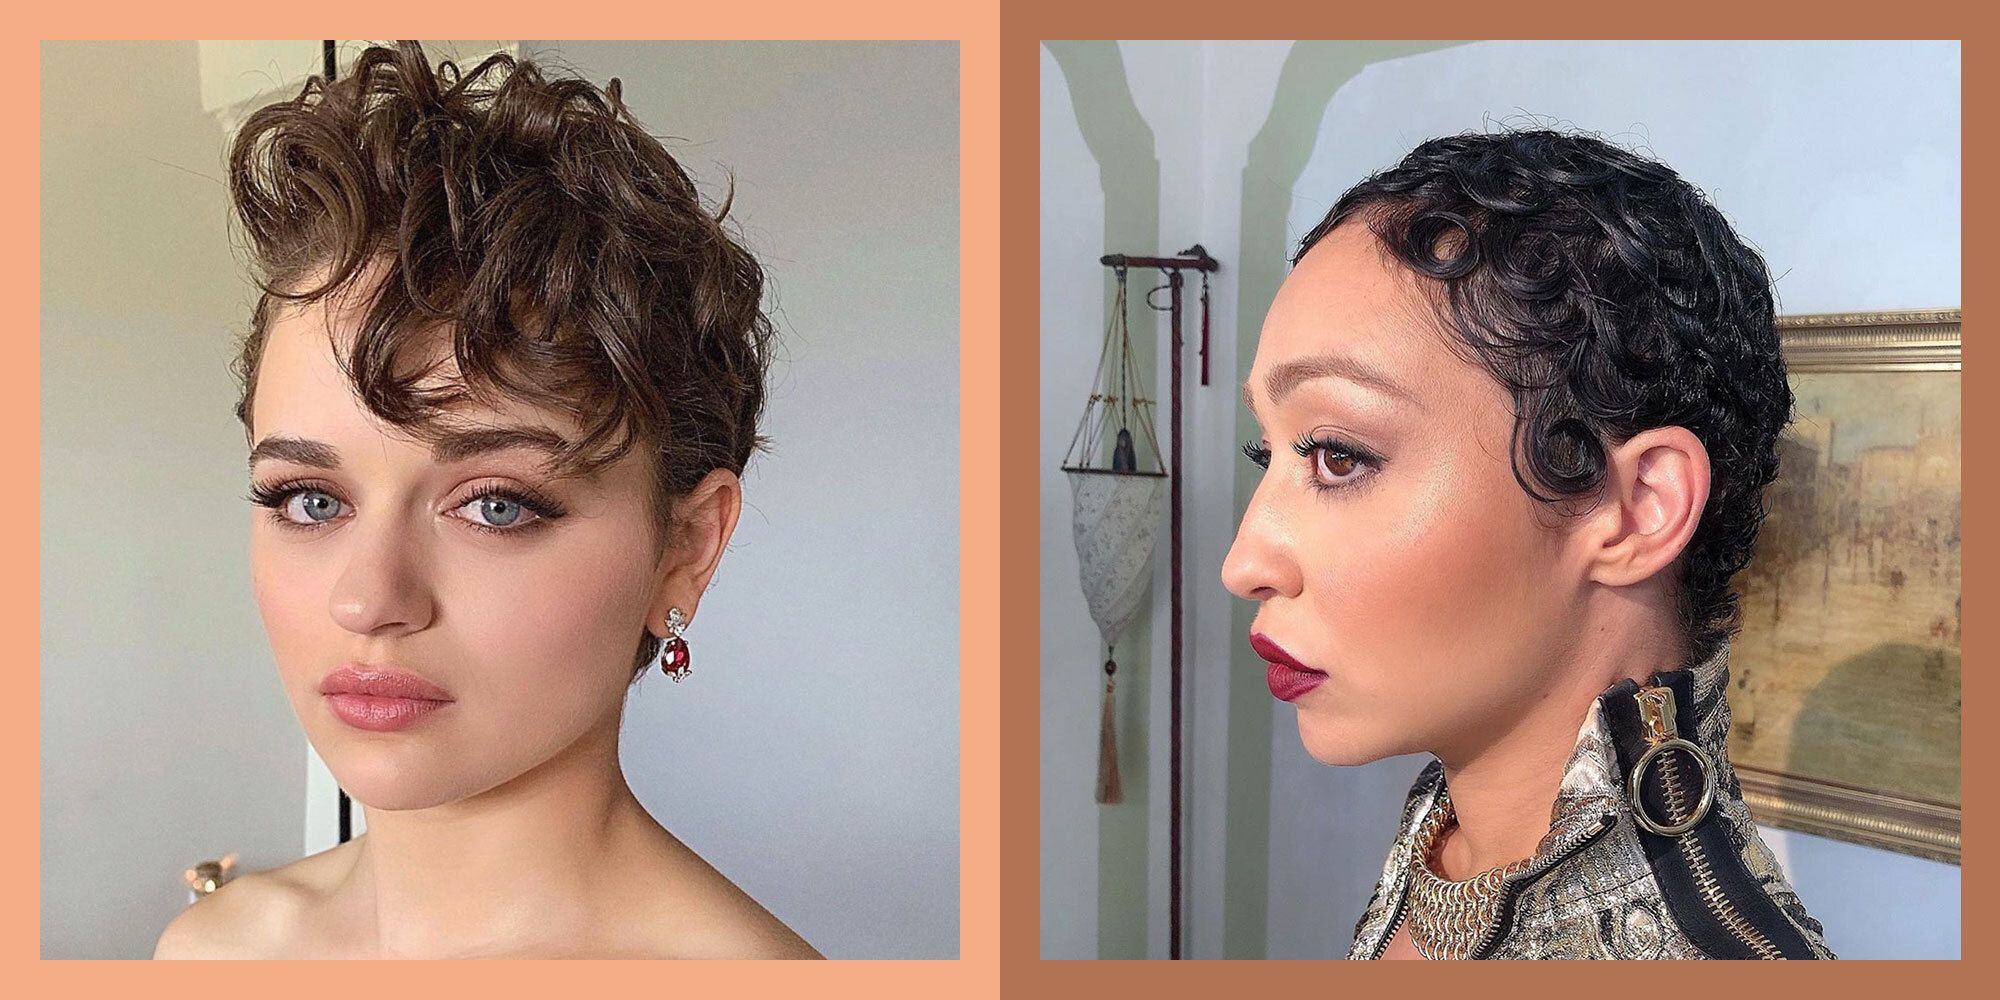 21 Curly Pixie Cuts You Need To Try In 2020 Short Curly Haircut Ideas